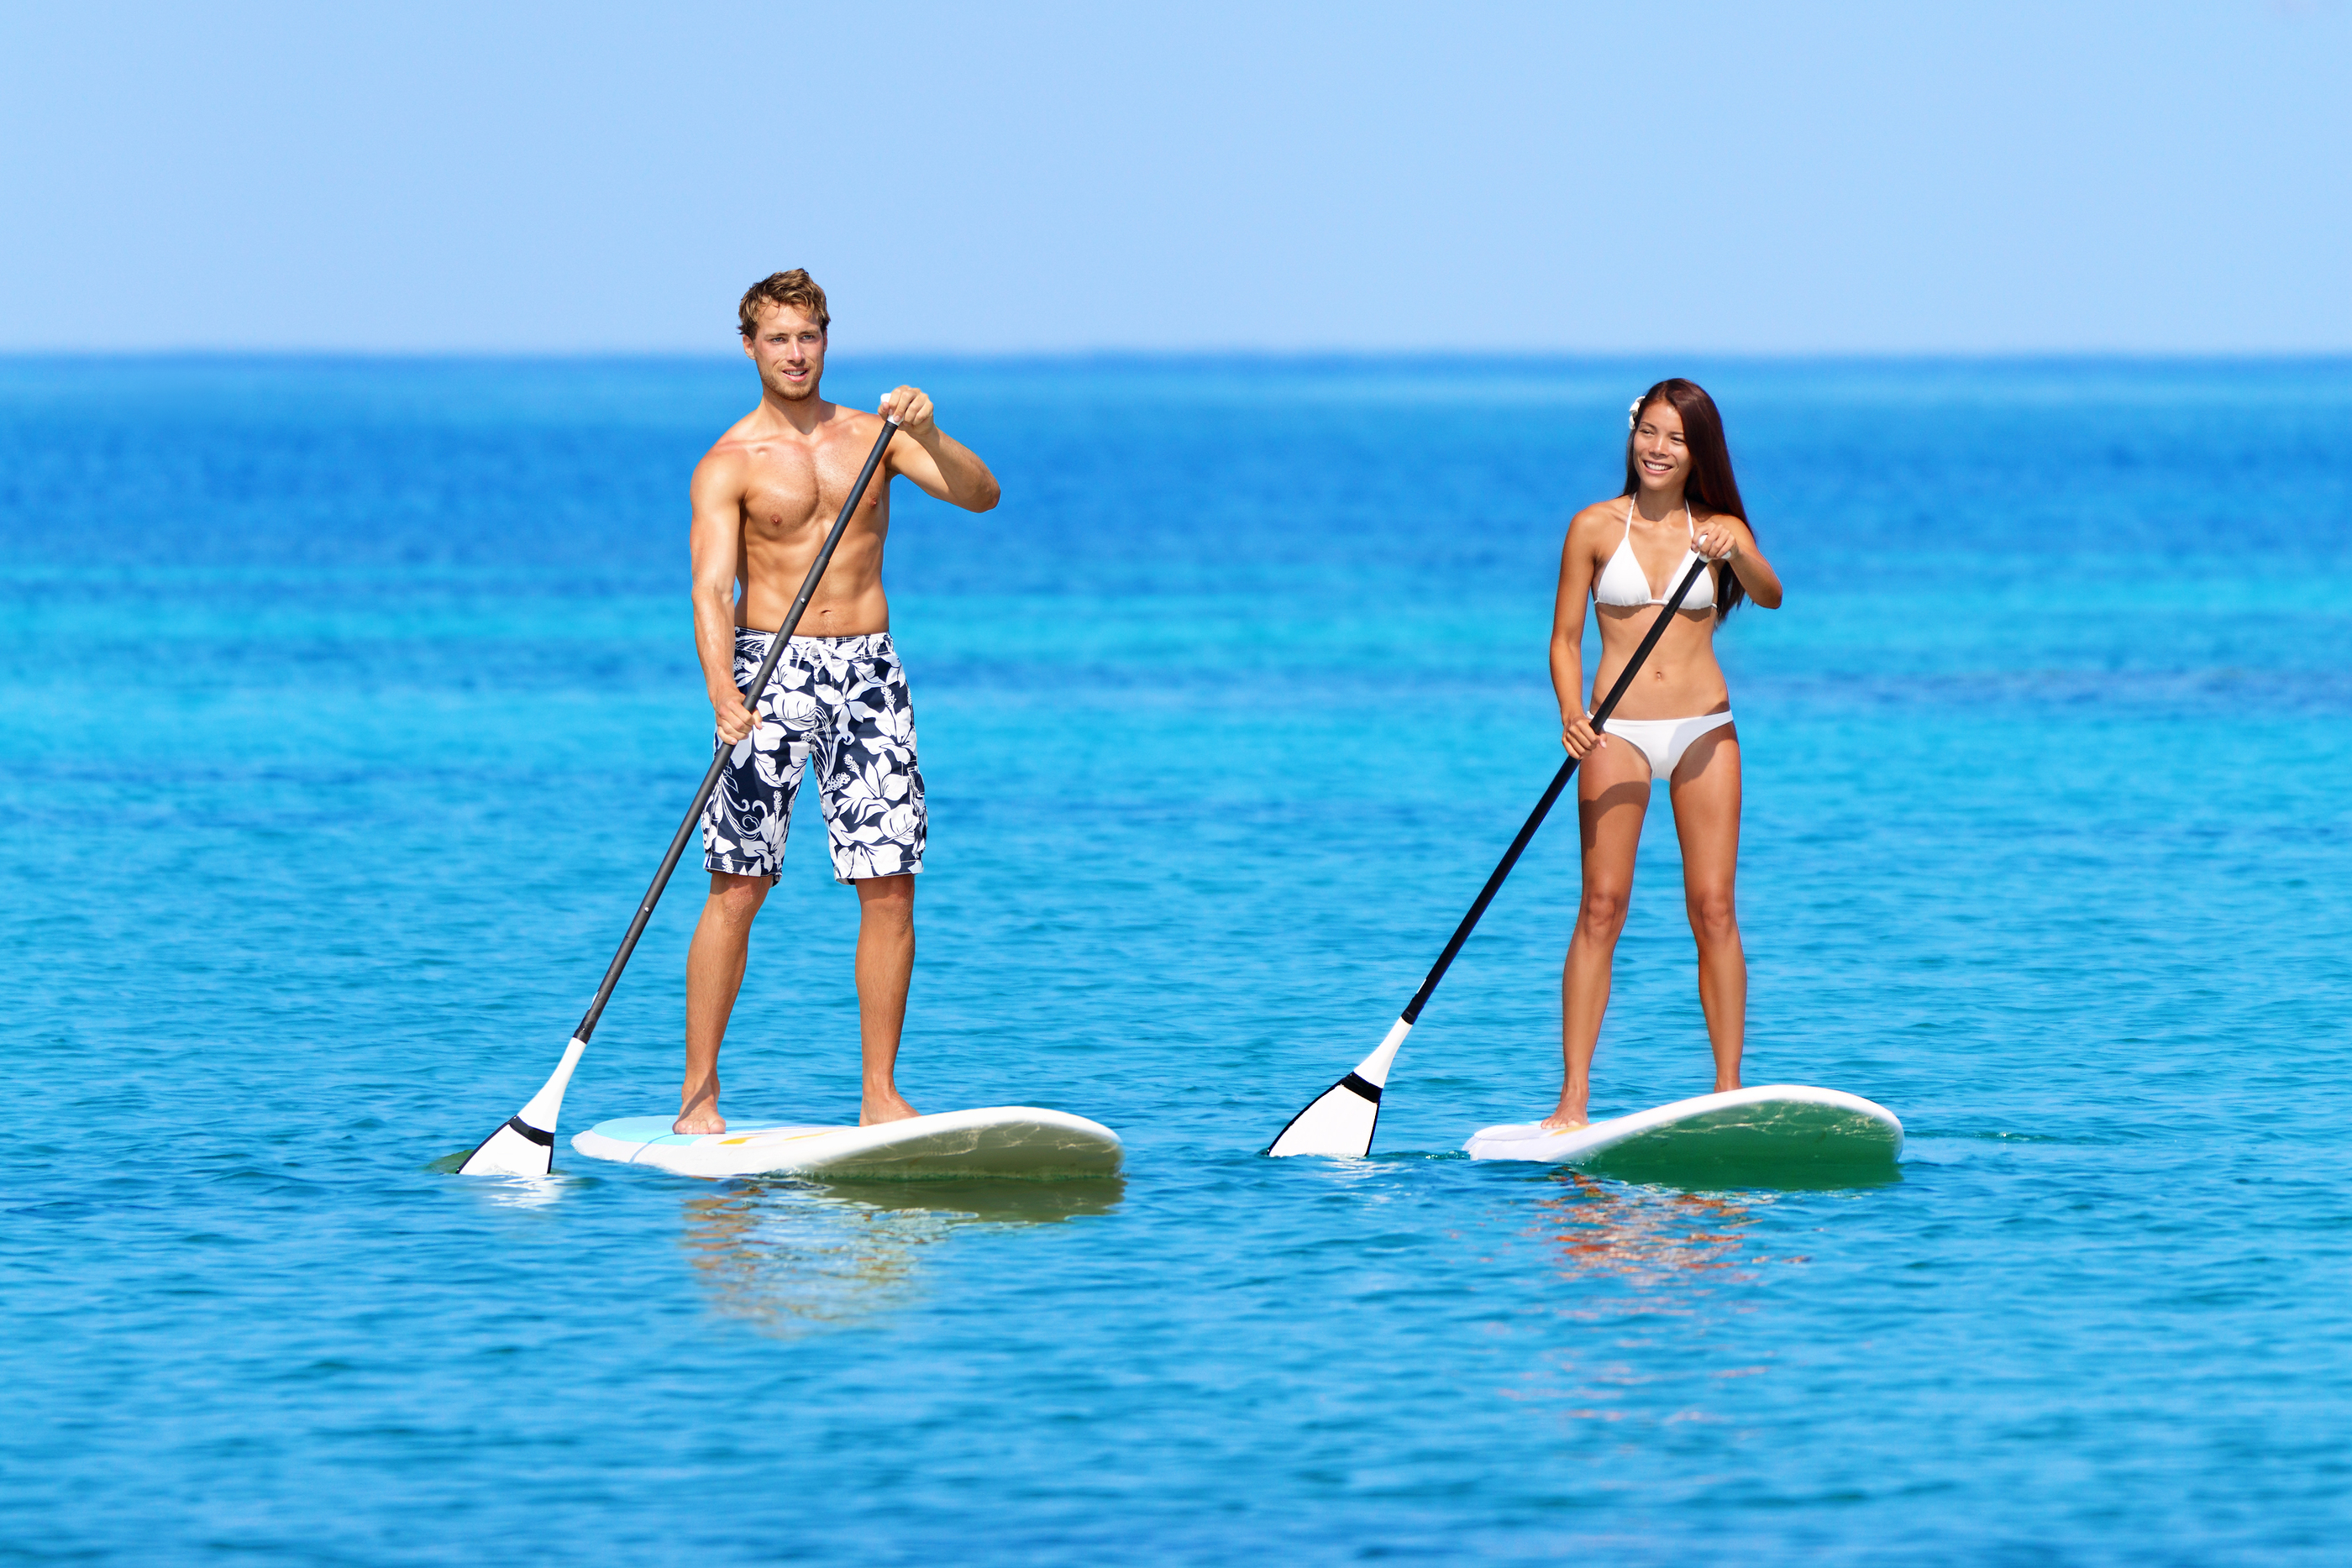 Stand up paddleboarding beach people on stand up paddle board, SUP surfboard sur